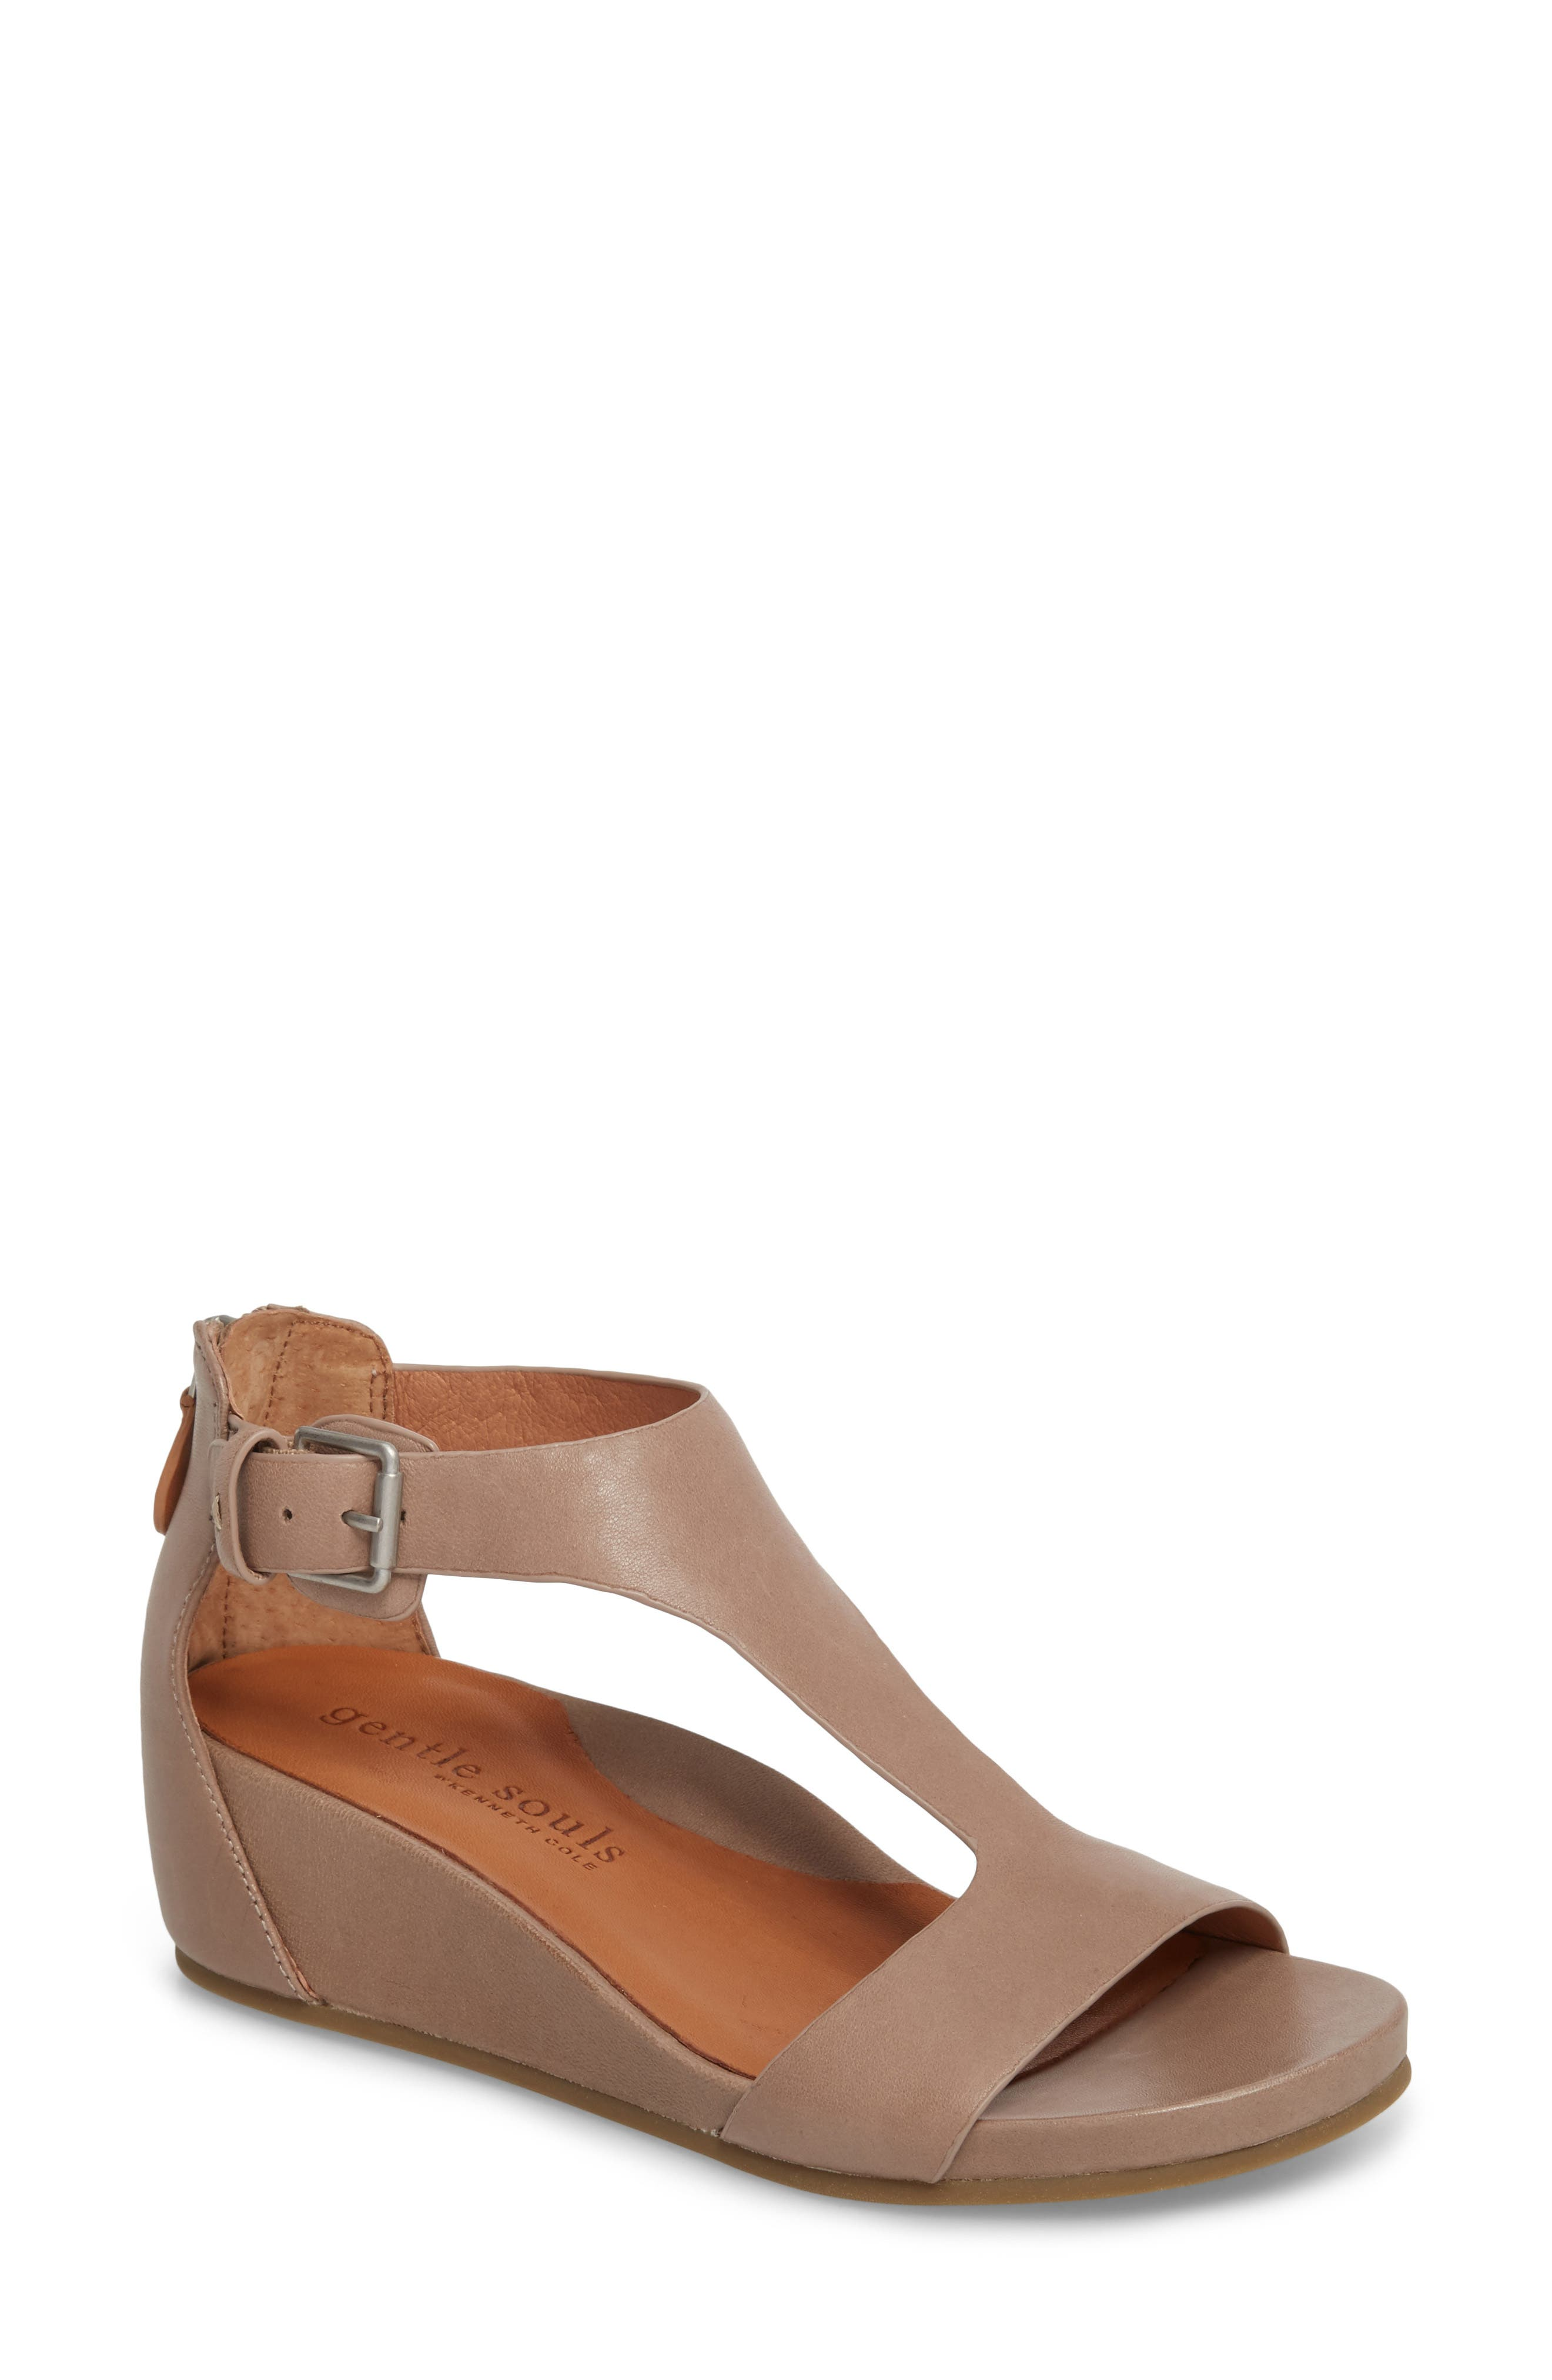 GENTLE SOULS BY KENNETH COLE, Gisele Wedge Sandal, Main thumbnail 1, color, PUTTY LEATHER